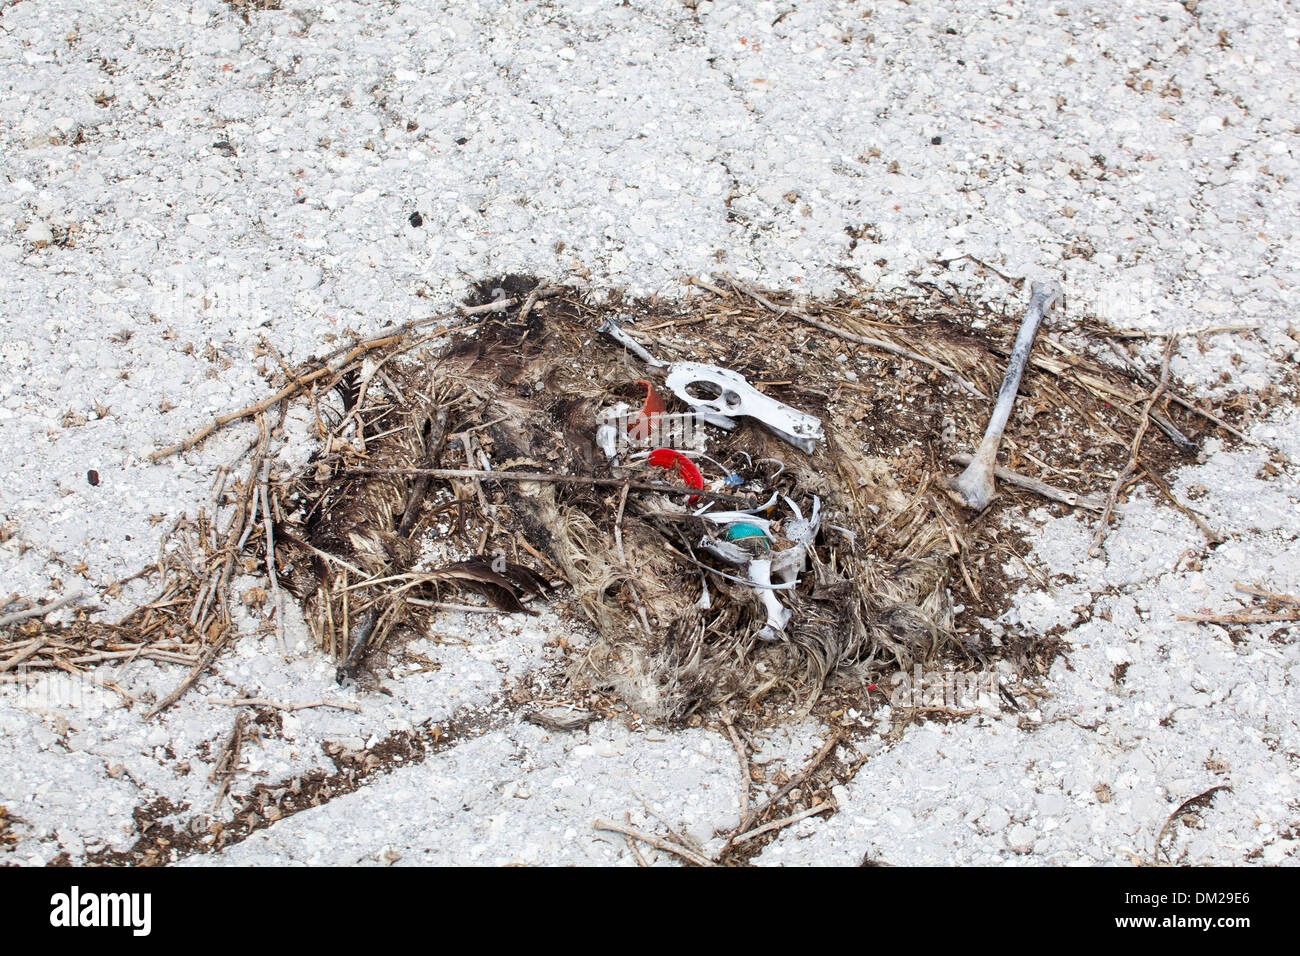 Remains of dead albatross with bottle caps and other plastic marine debris which were ingested by the bird. - Stock Image